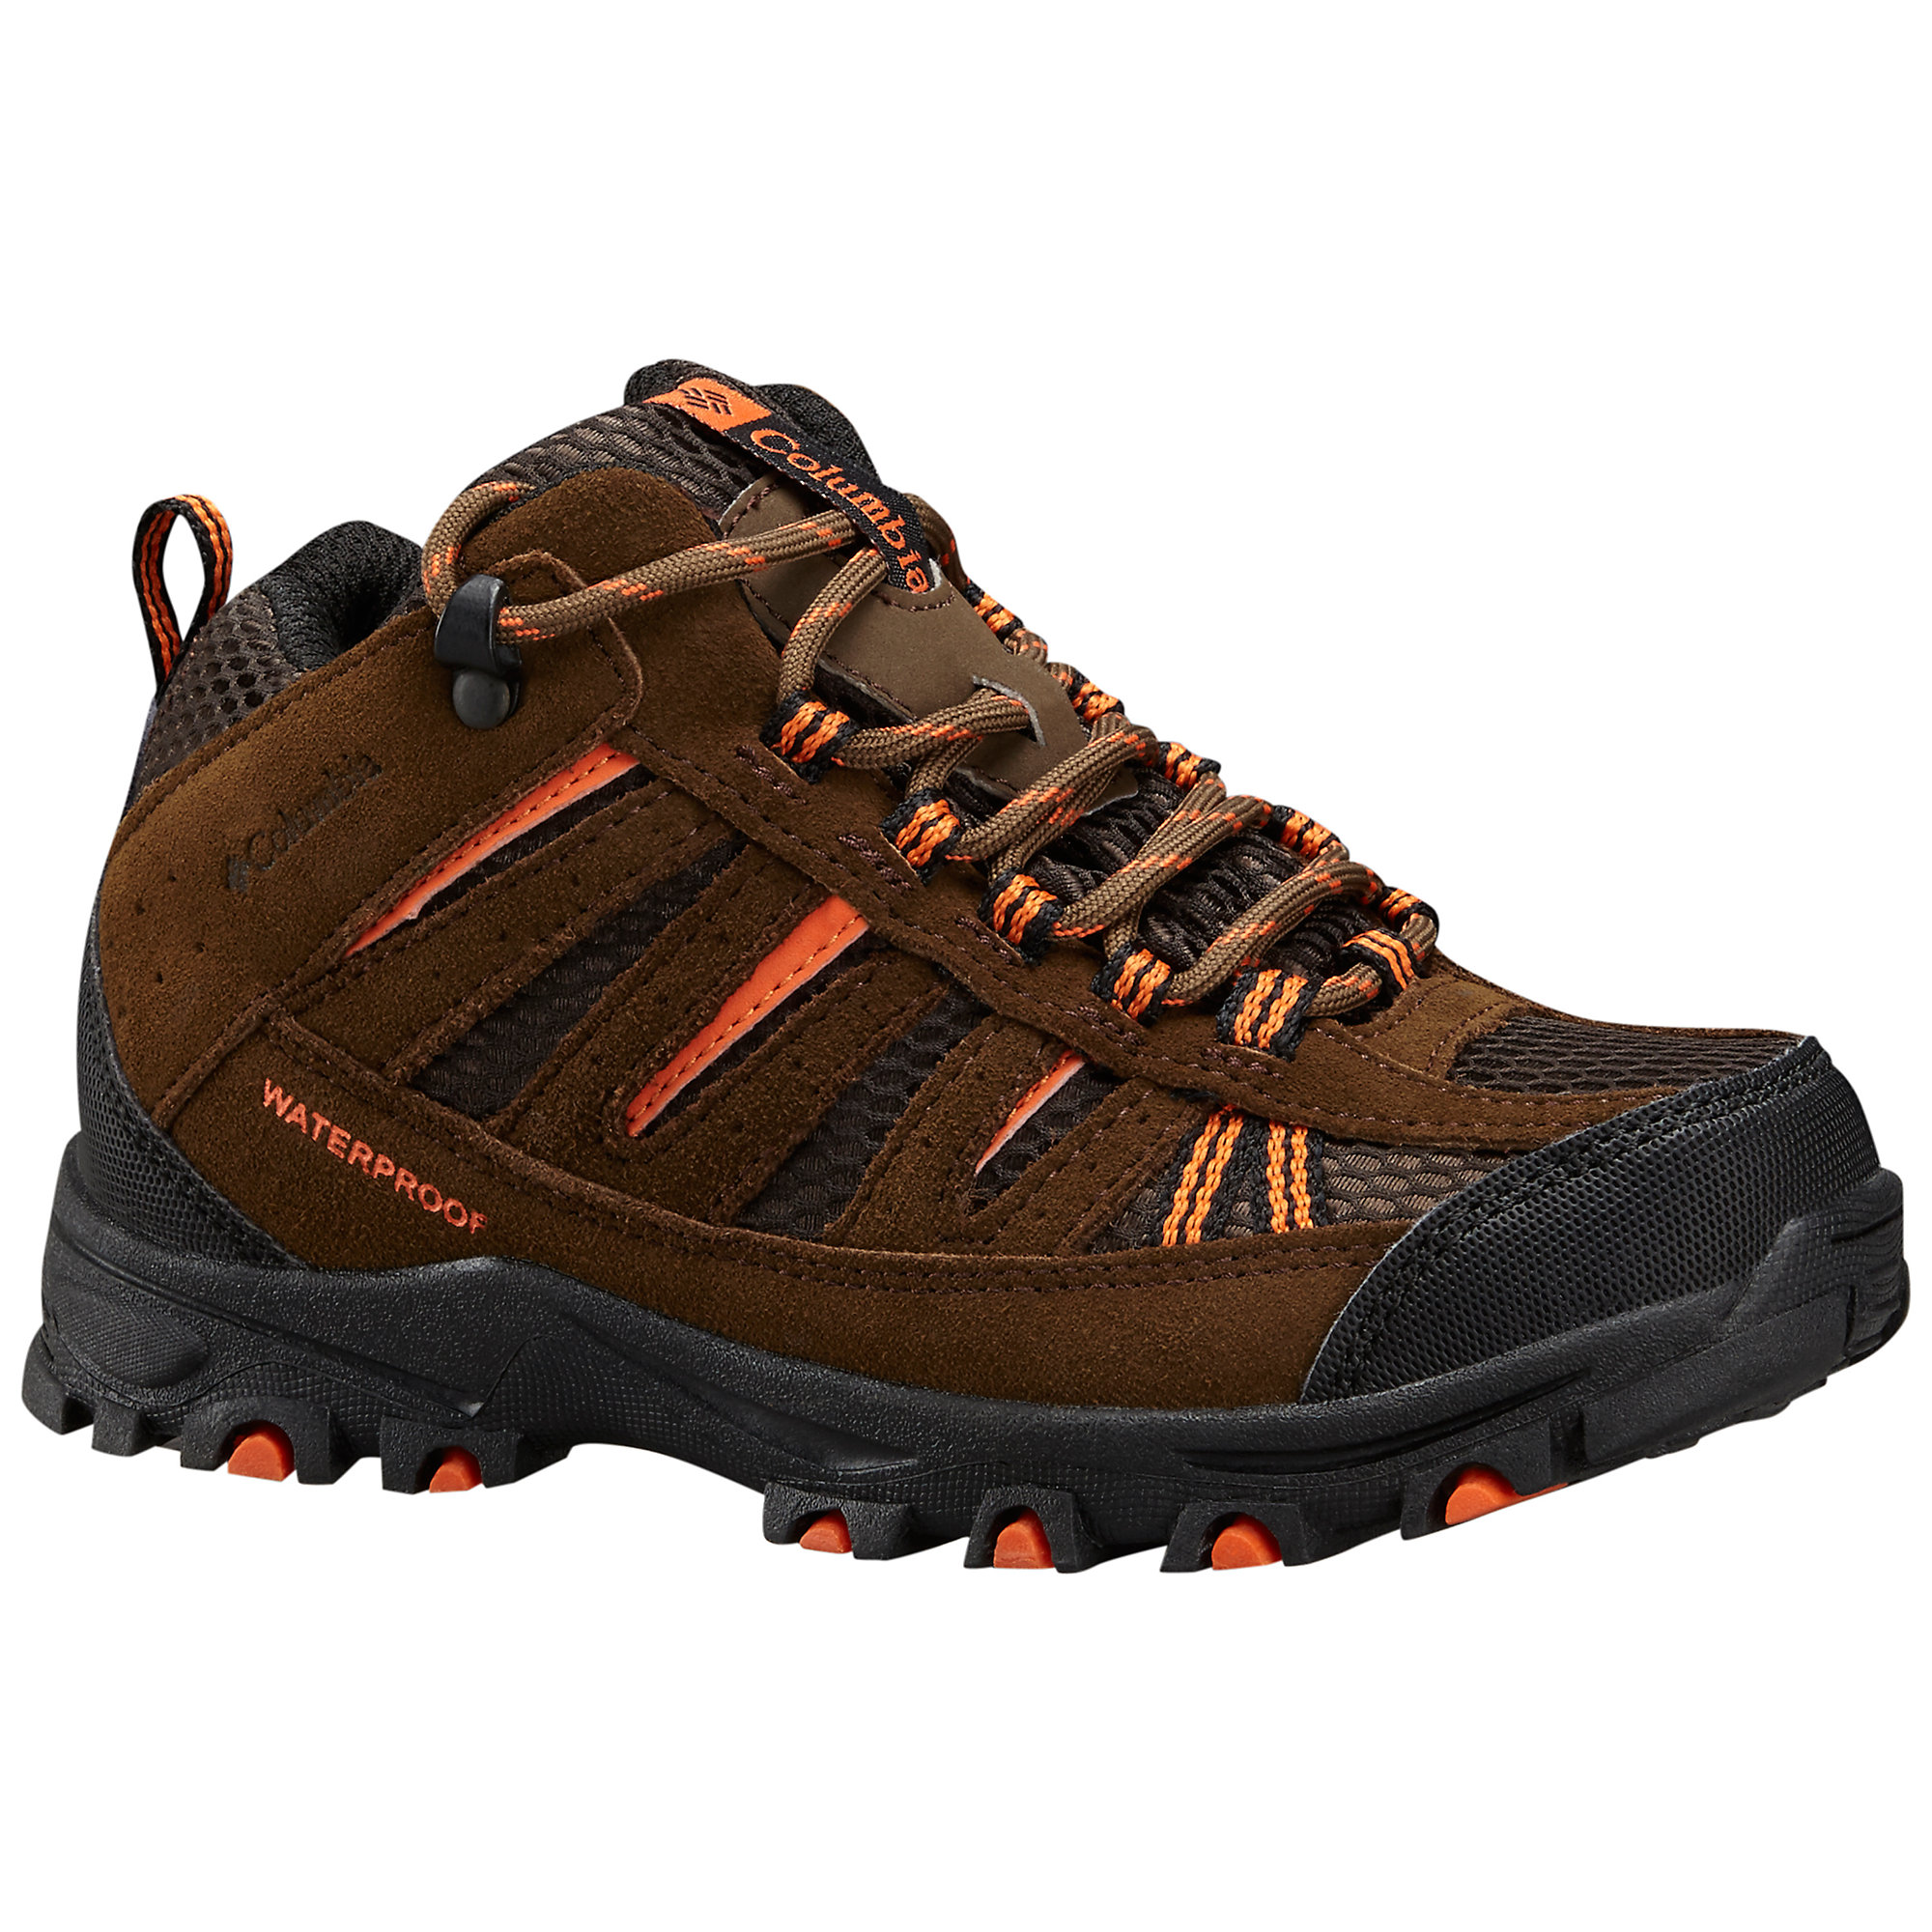 Columbia Pisgah Peak Mid Waterproof